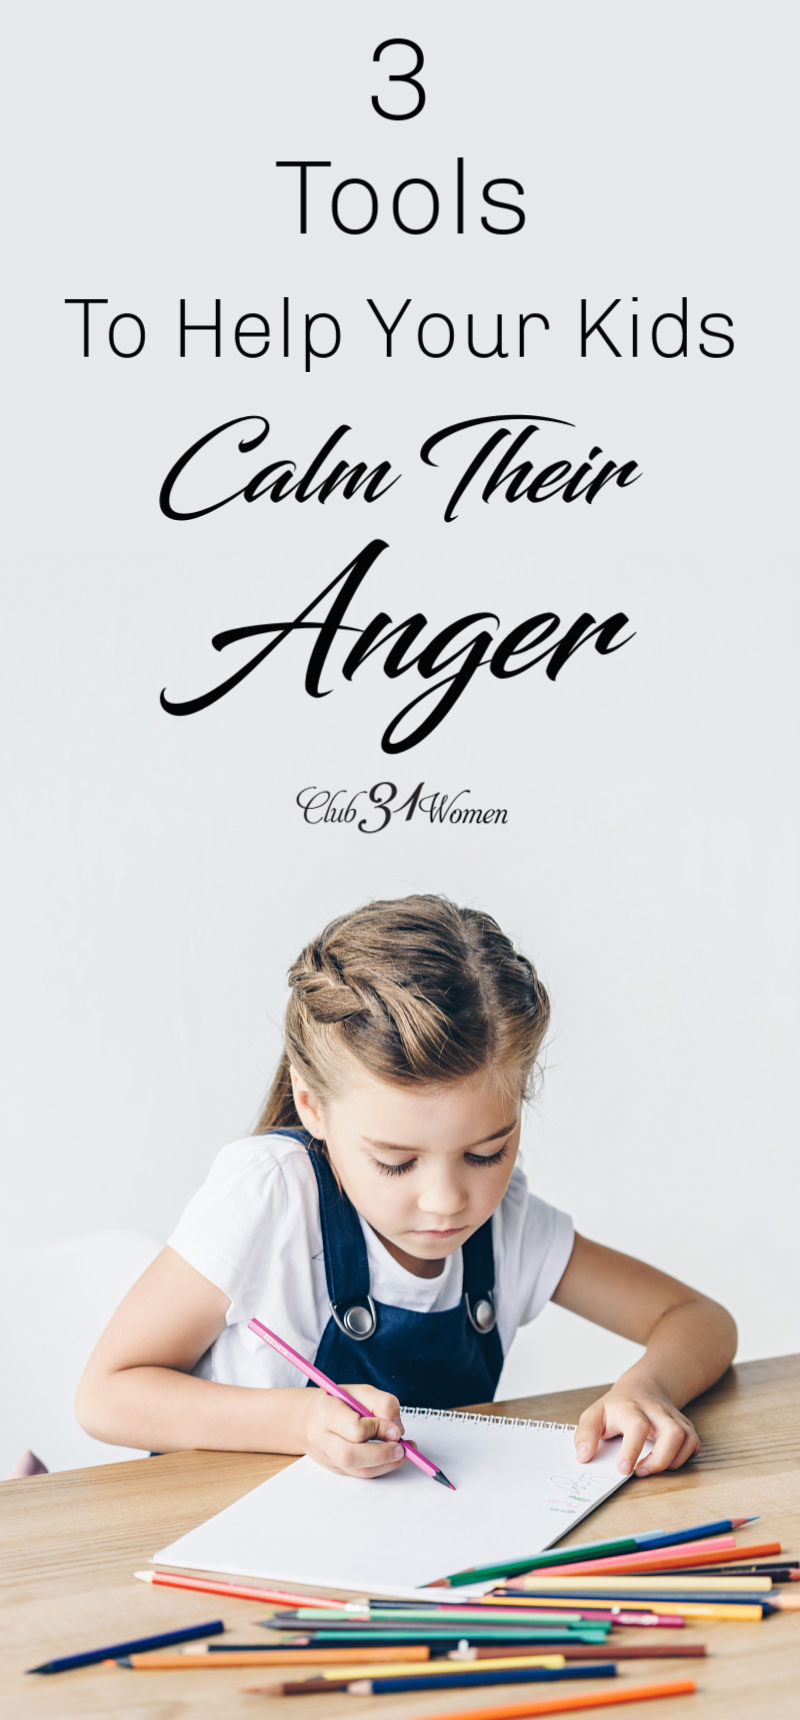 The more children learn to think through how to calm themselves when anger is not involved, the more capable they will be of calming themselves when it is. via @Club31Women